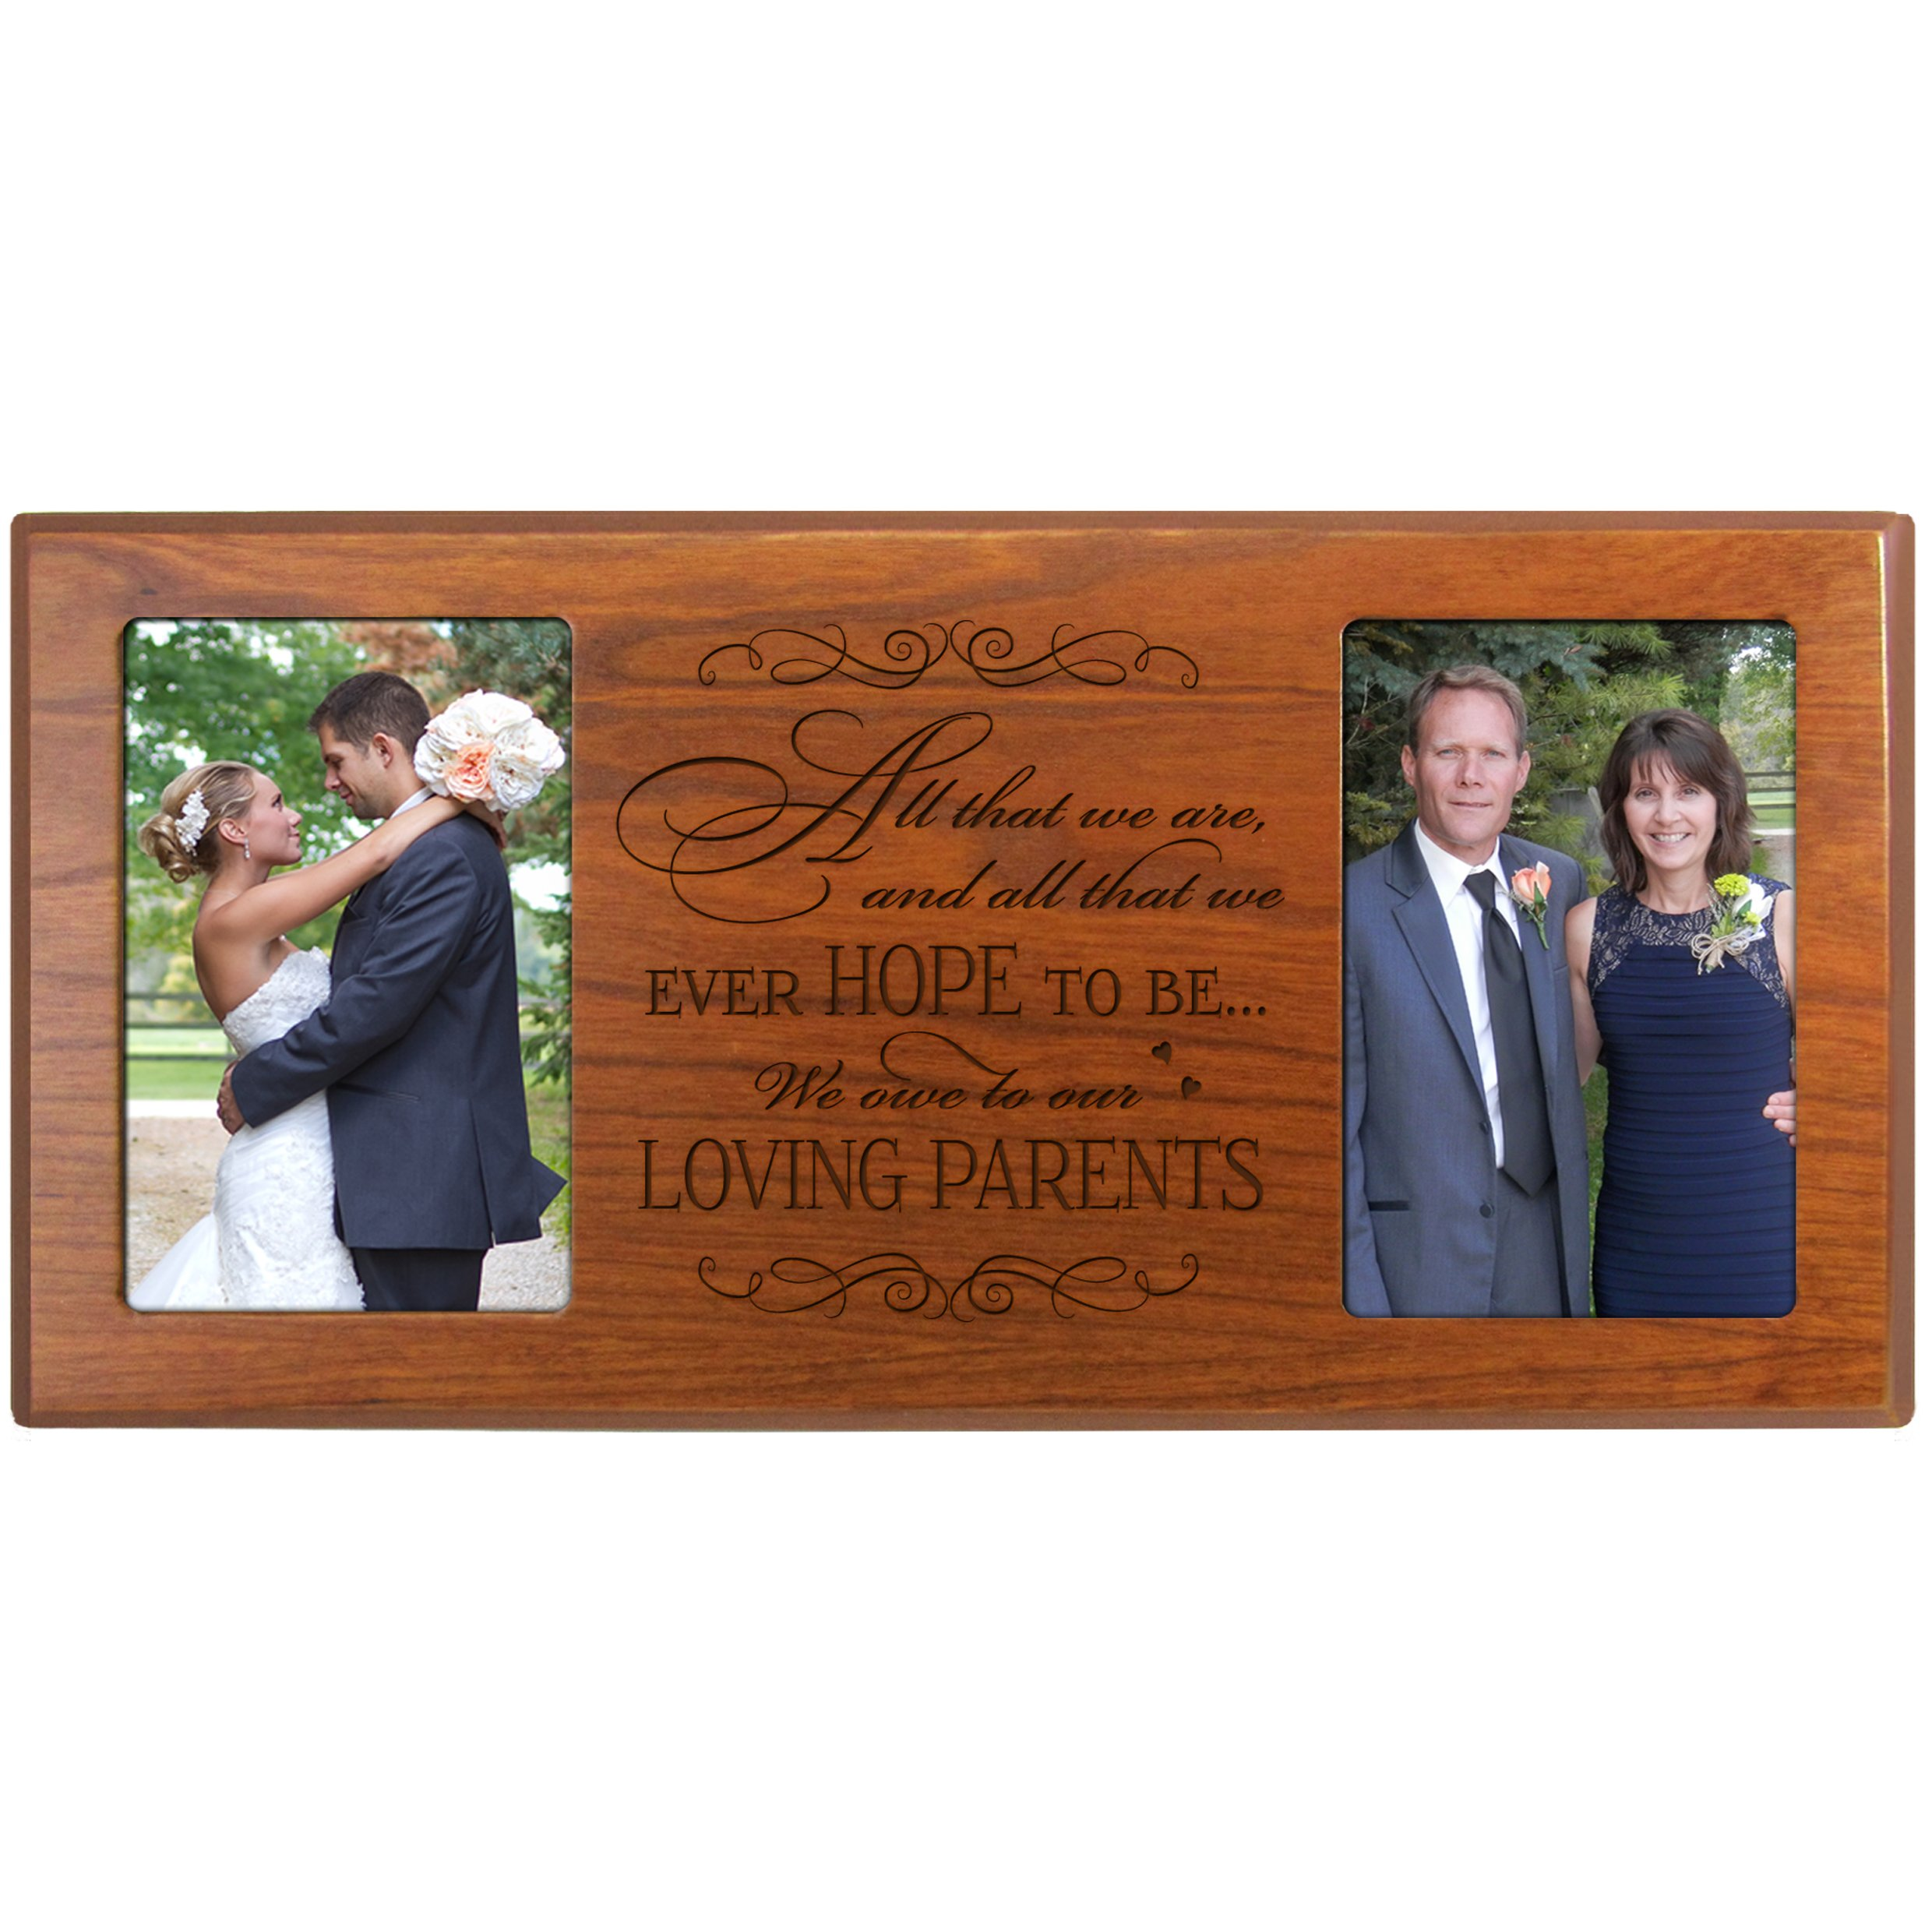 LifeSong Milestones Parent Wedding Gifts Wedding Picture Frame Wedding Gift for Parents Mom and Dad Thank You Gifts 16'' W X 8'' H Exclusively From (Cherry) s by LifeSong Milestones